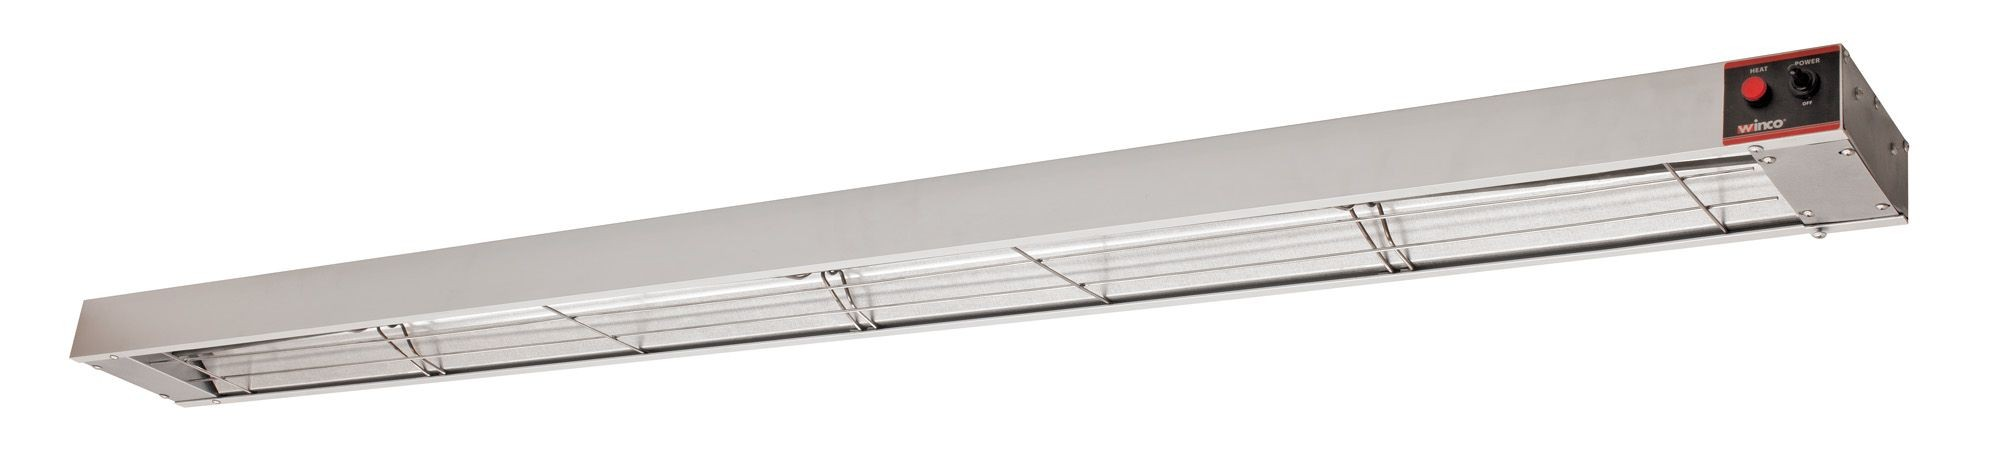 "Winco ESH-72 72"" Electric Infrared Strip Heater"